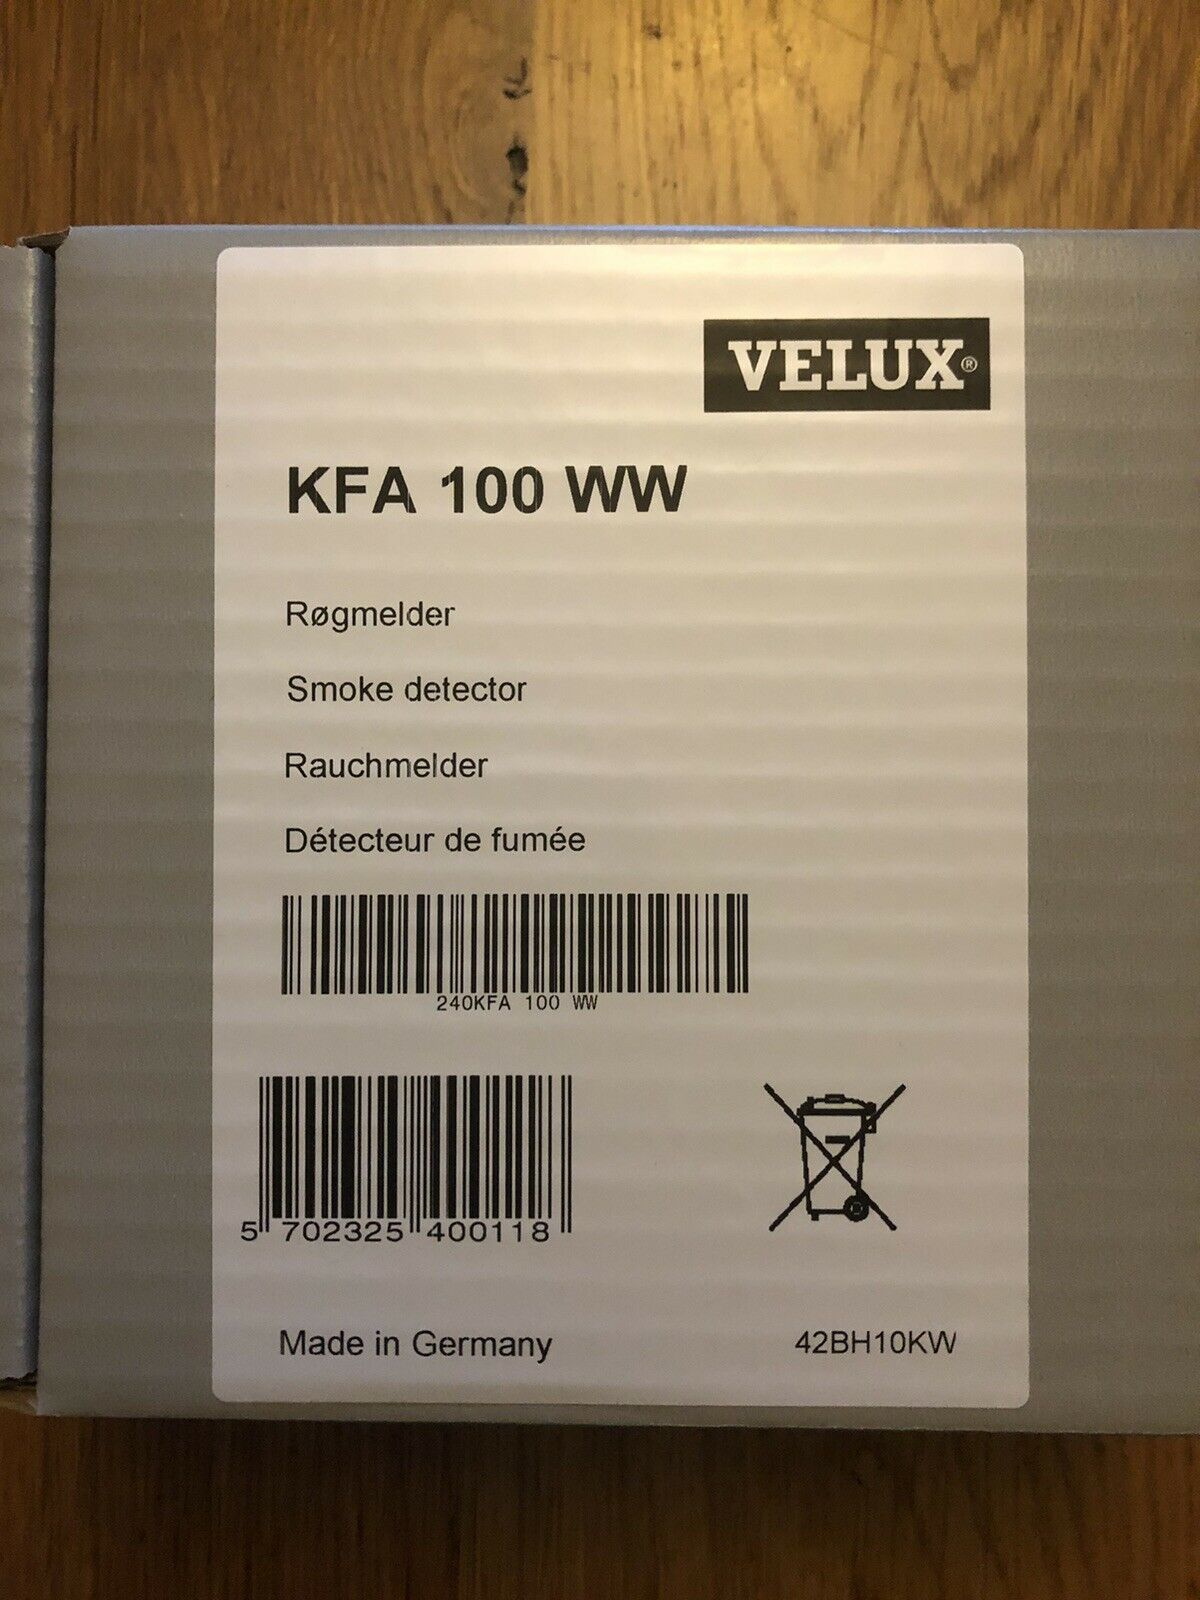 VELUX KFA WW 100 Smoke Detector for